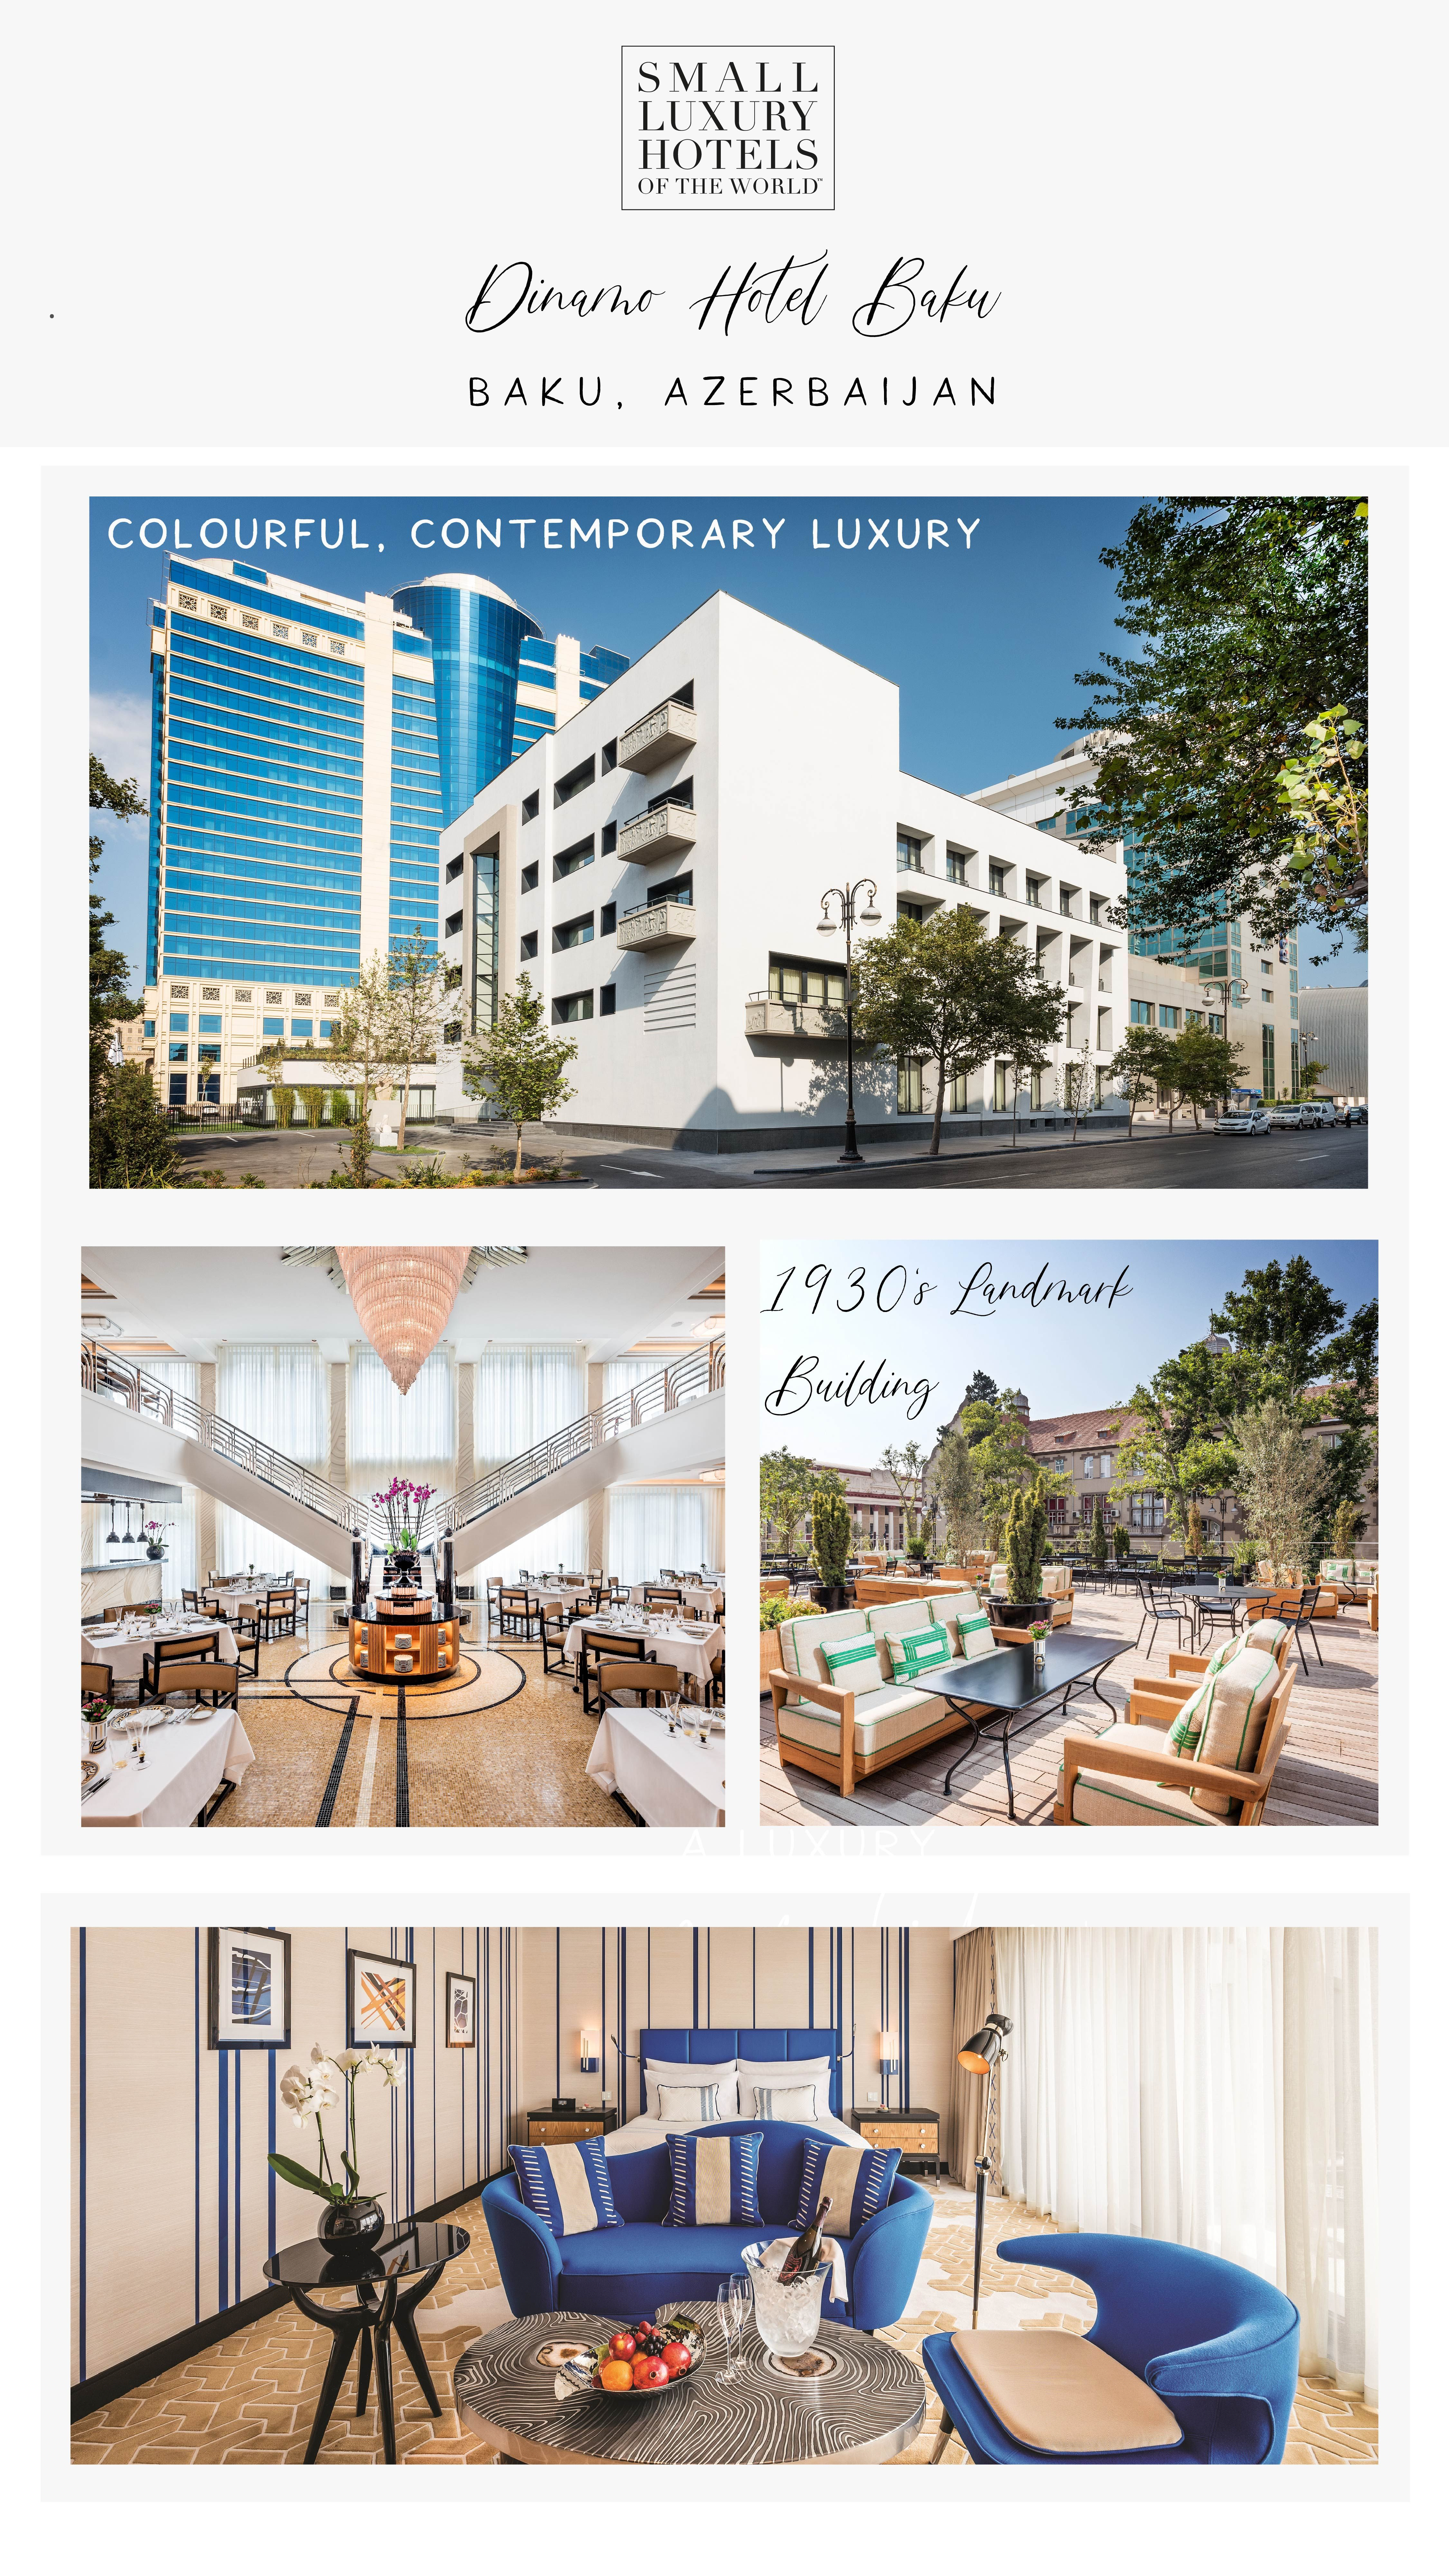 Please Welcome Our First And Only Hotel In Azerbaijan Dinamo Hotel Baku Is An Elegant City Centre Hotel With Spacious Designer Hotel Luxury Hotel Roof Design